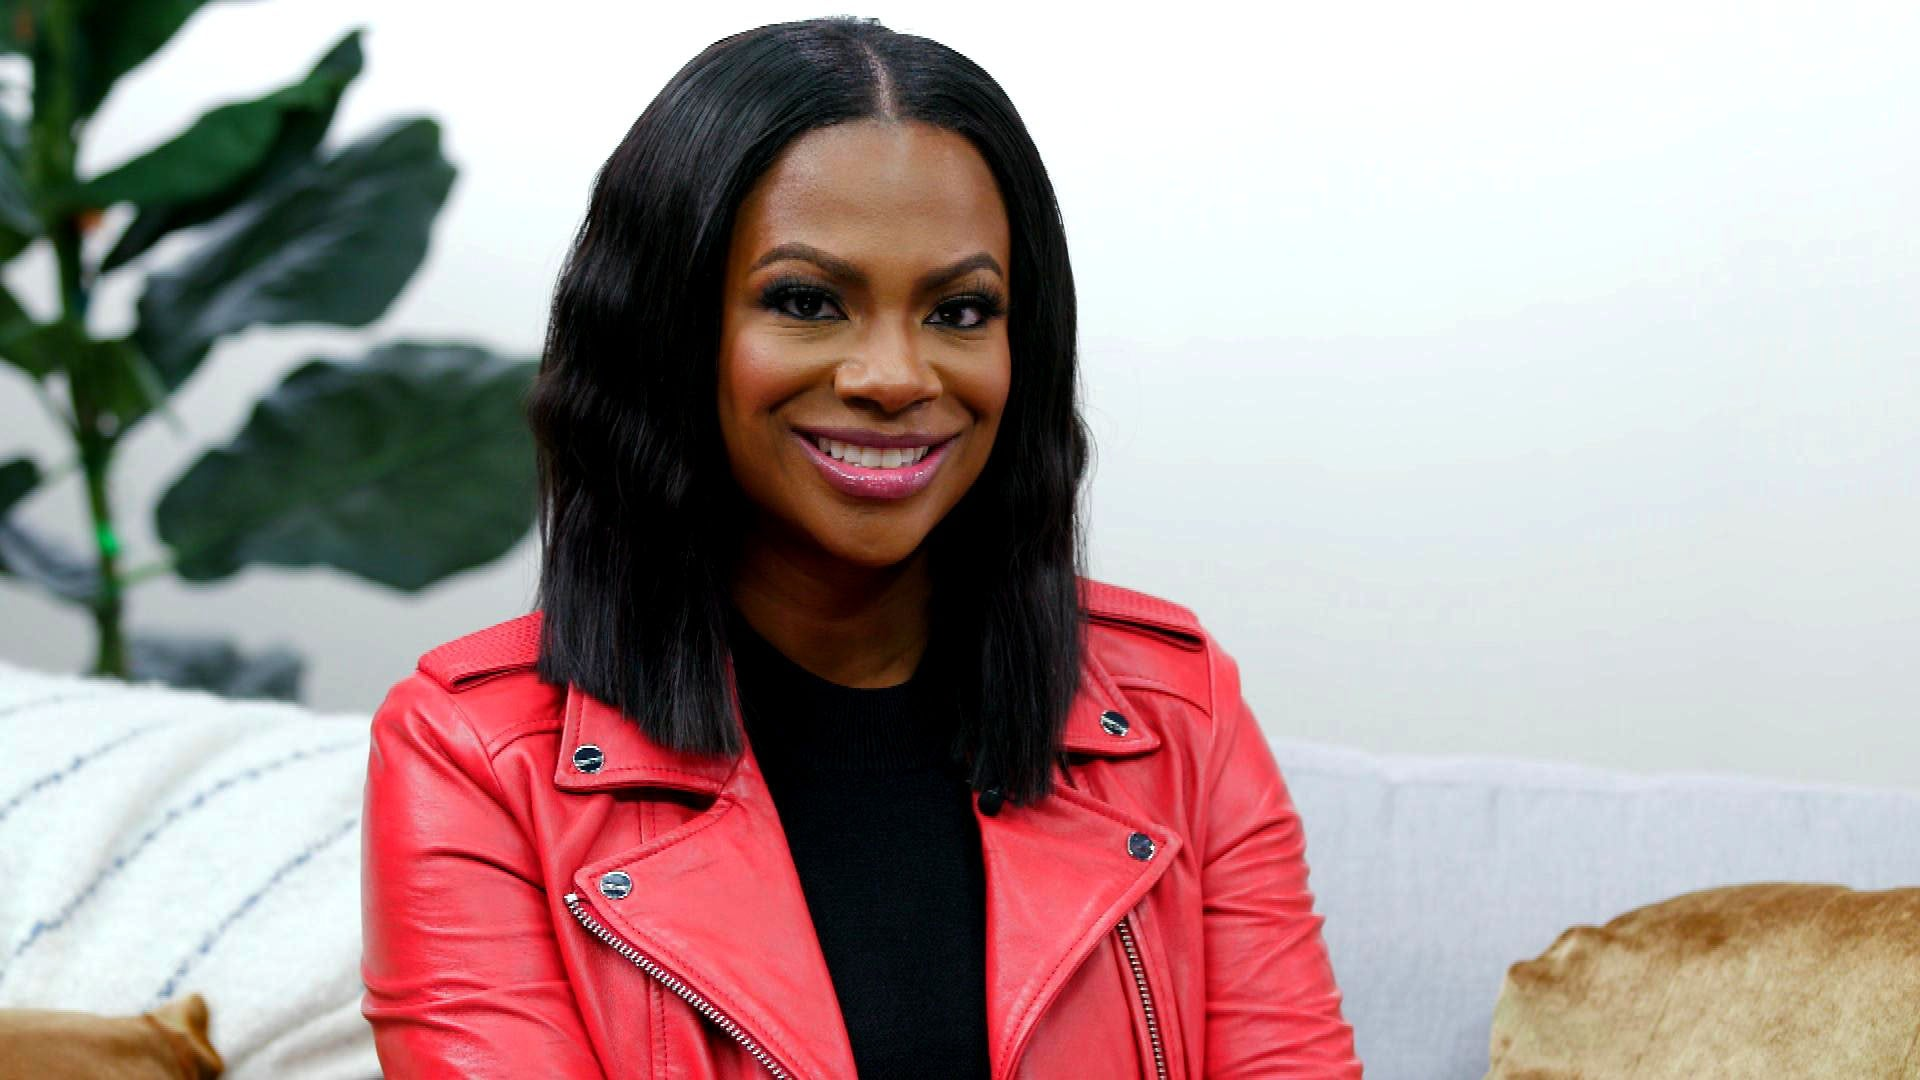 Kandi Burruss Shares Pics From An Important Kandi Cares Event – Check Them Out Here